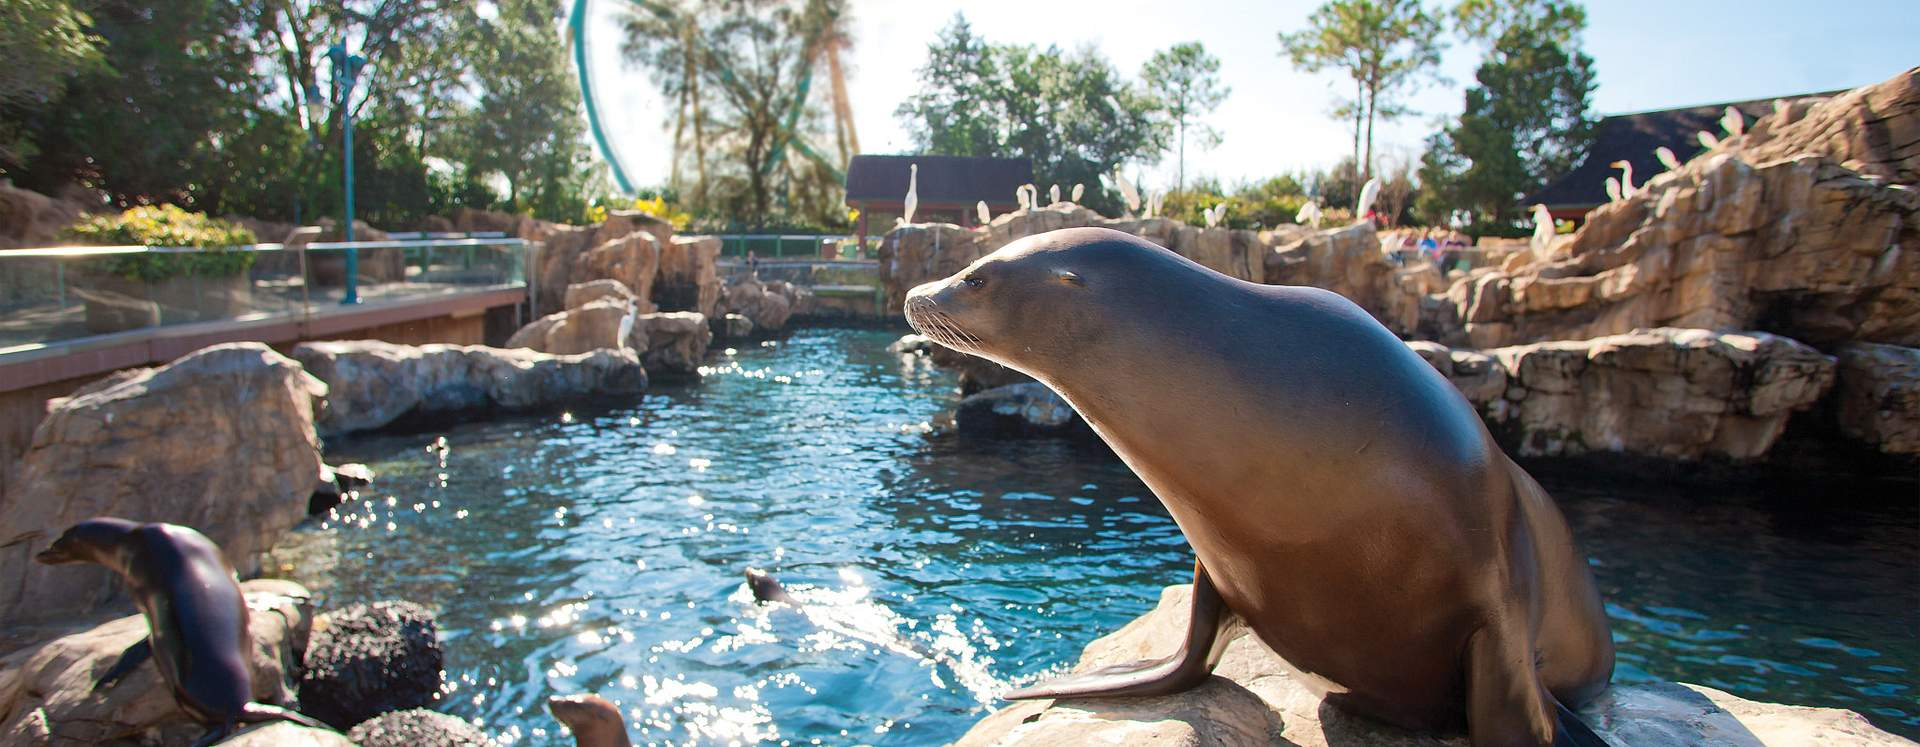 Sea lions with roller coasters in the background at SeaWorld Orlando.